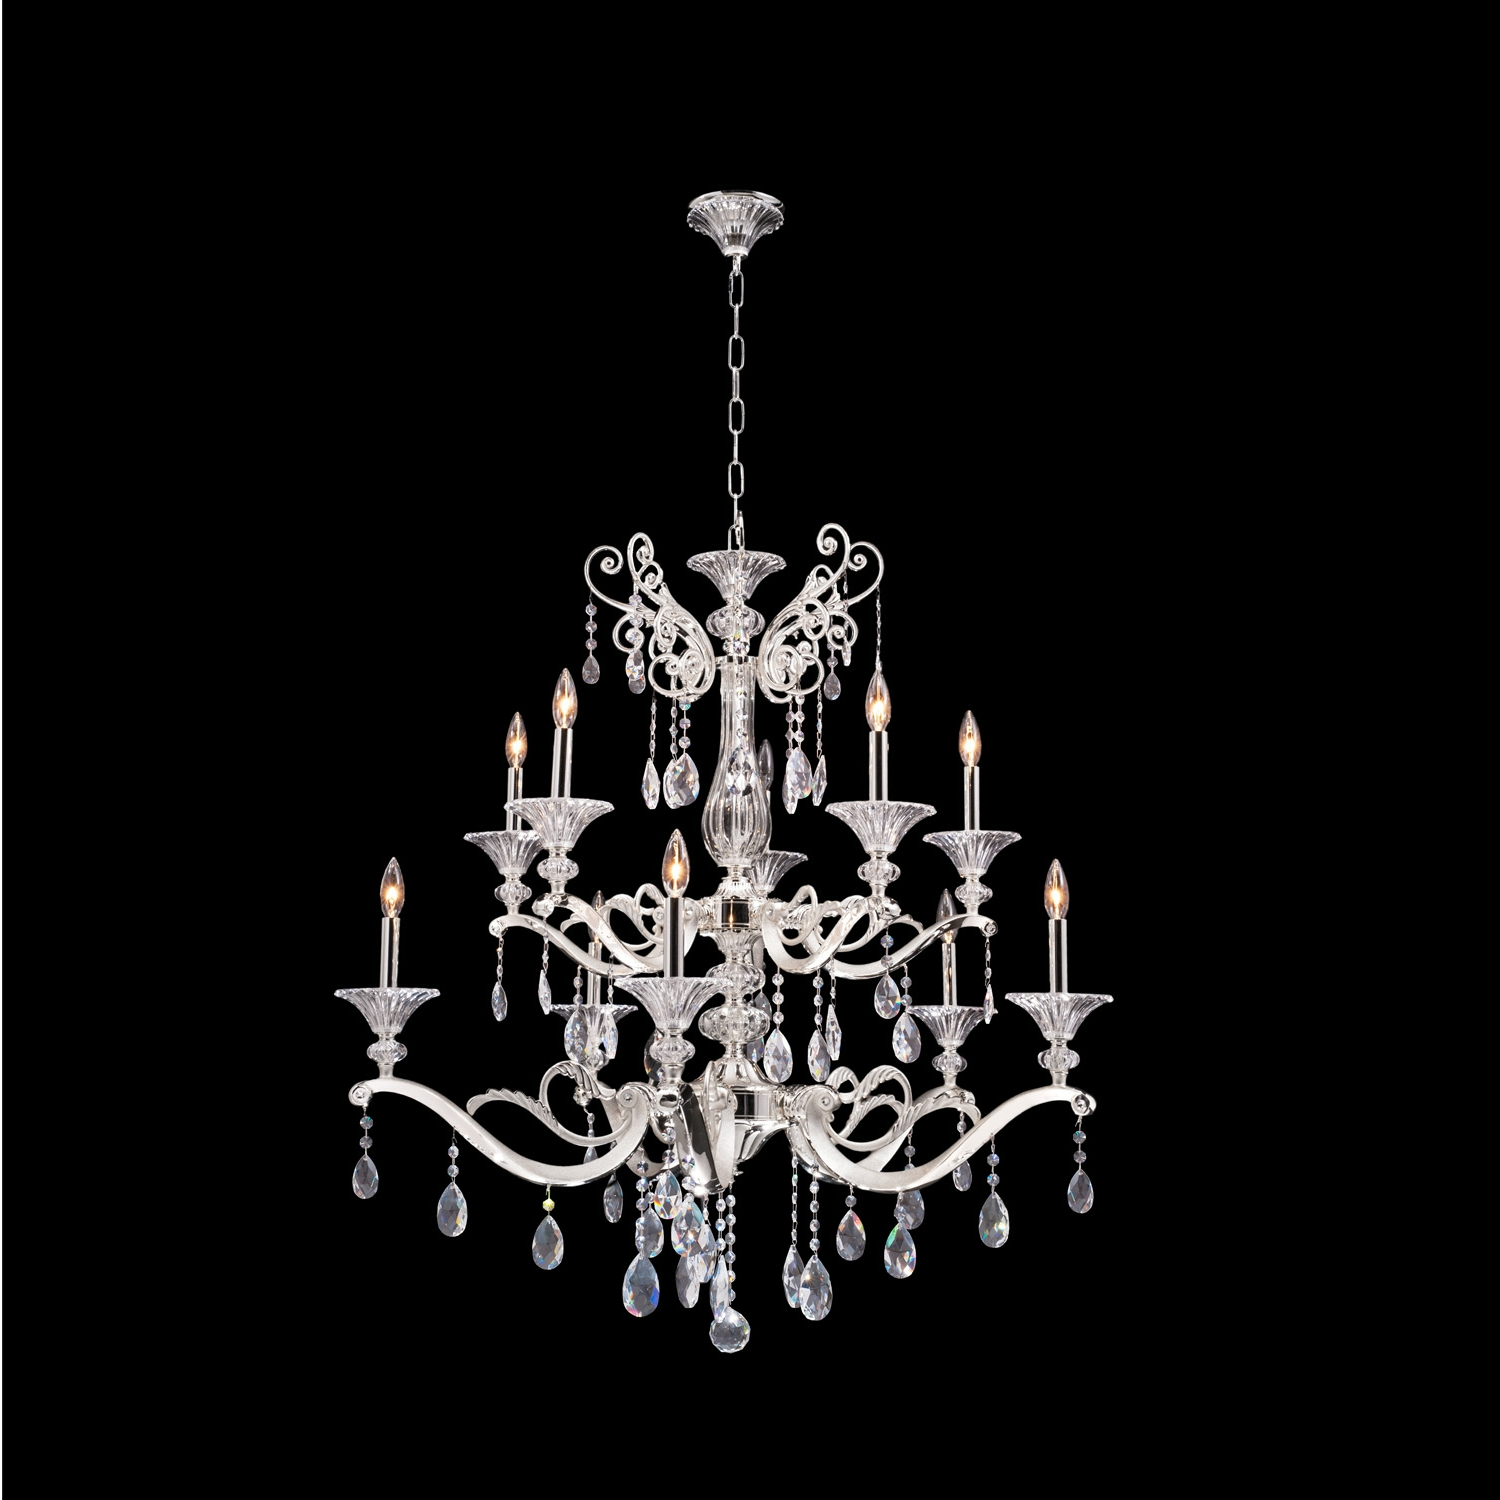 Vasari 10 Light Chandelier